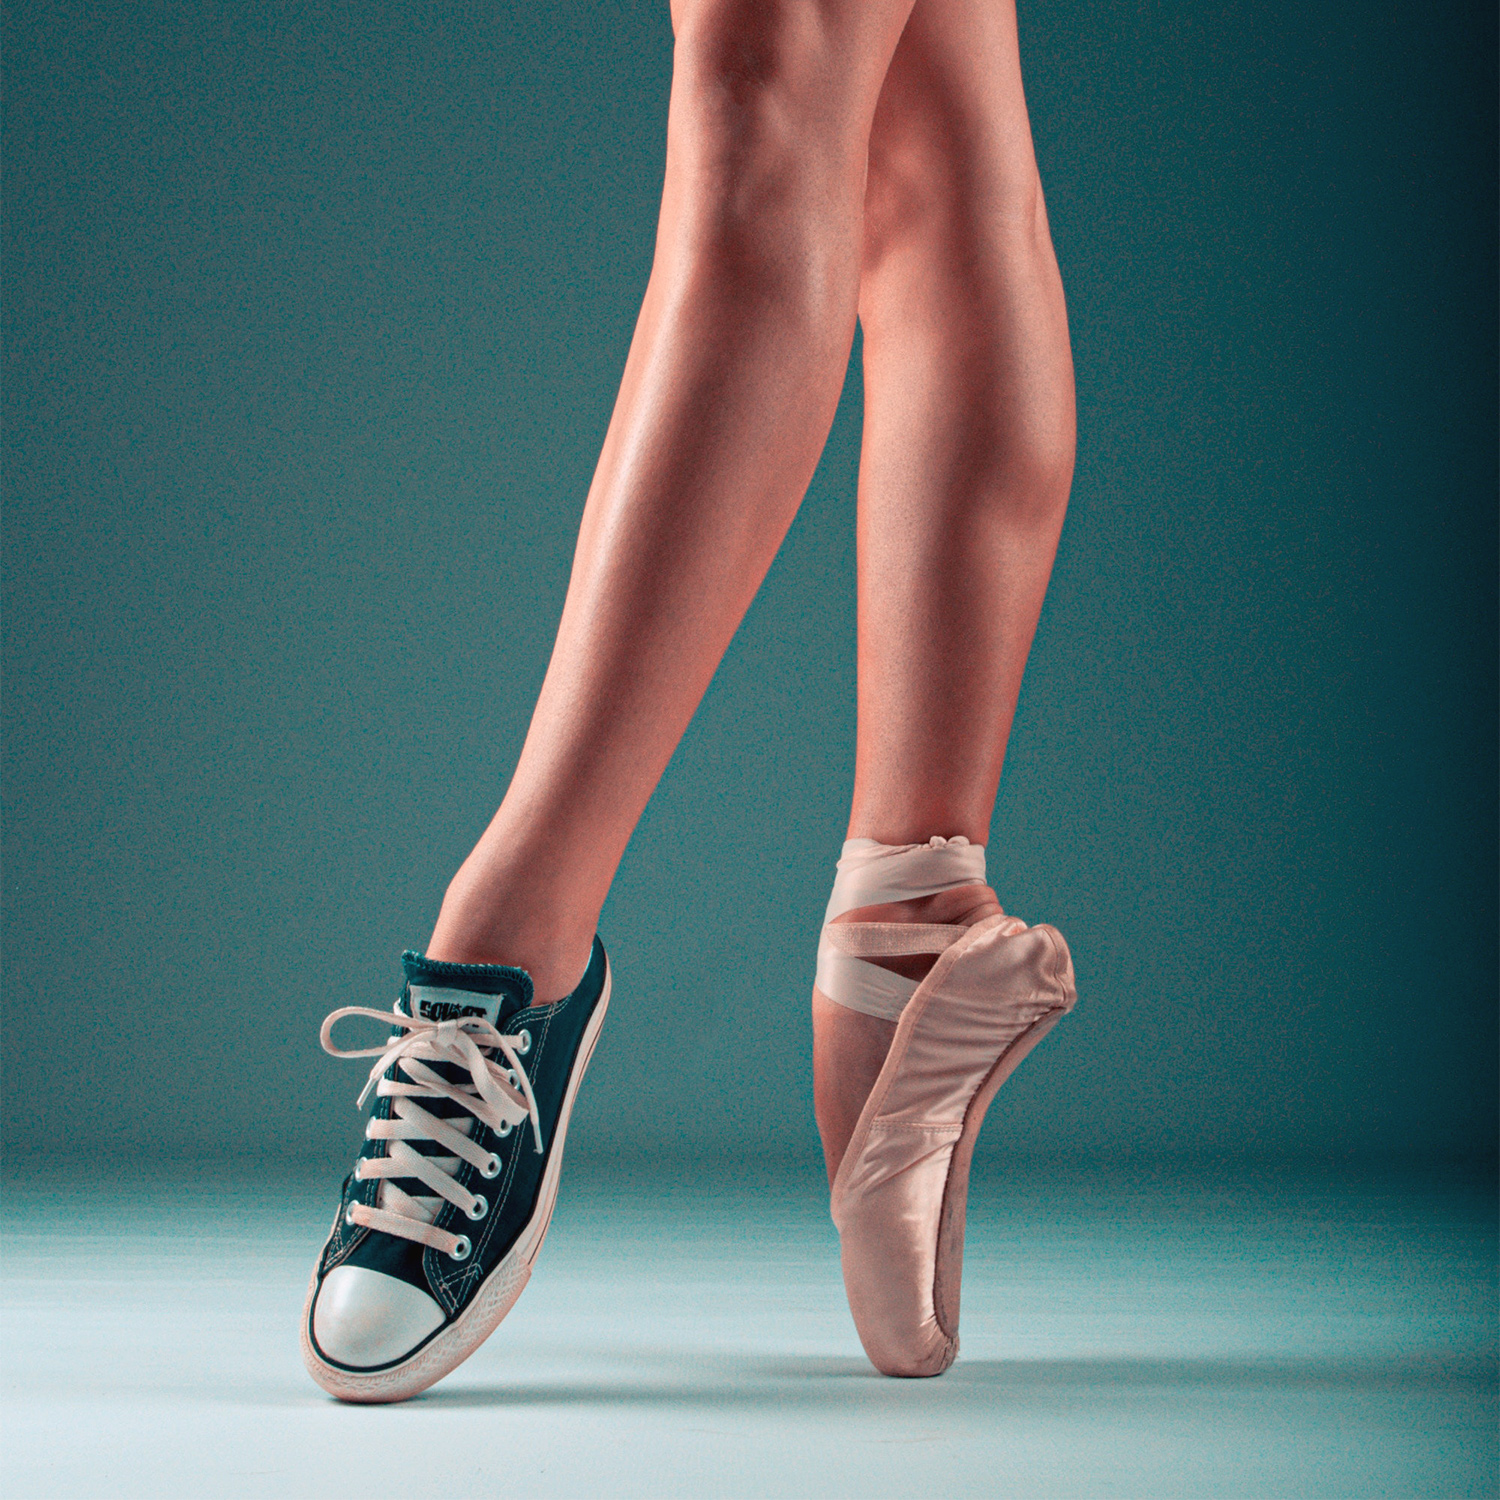 women_shoes_ballet_ballet_inlinephotography_square.jpg